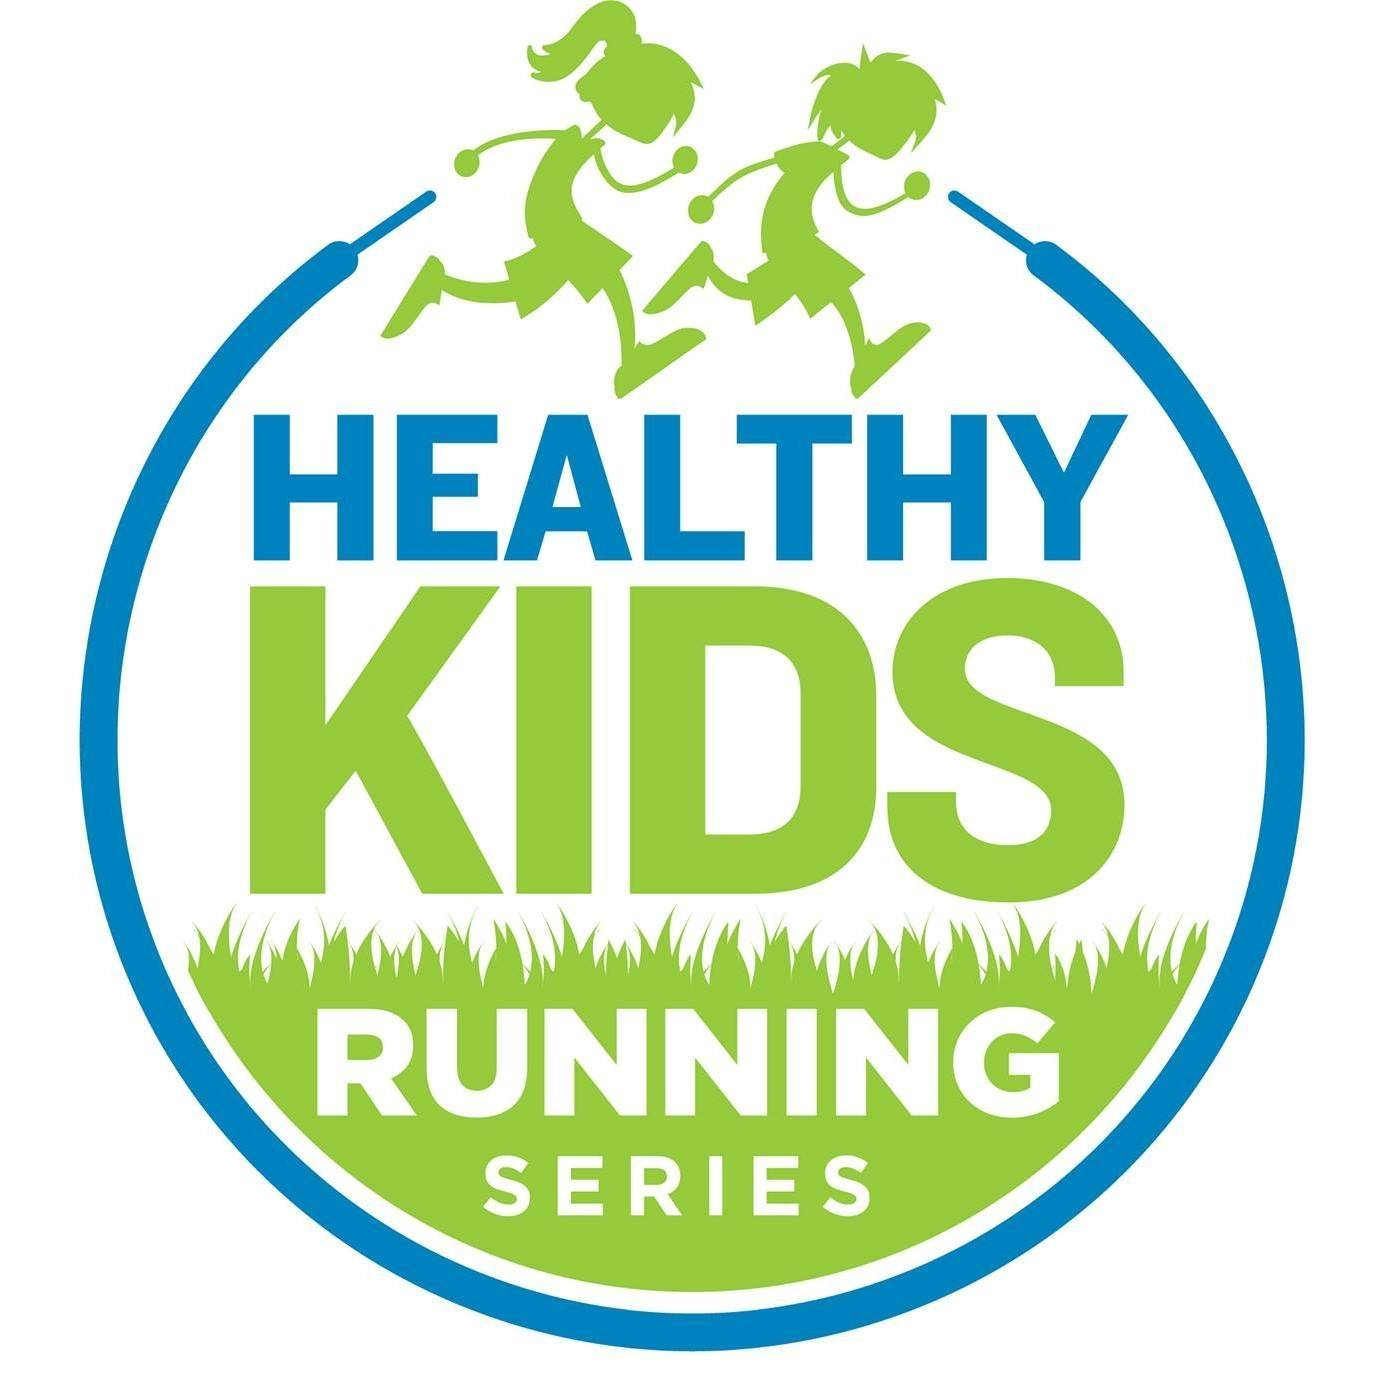 Healthy Kids Running Series Fall \u002D Arlington, VA - cover image